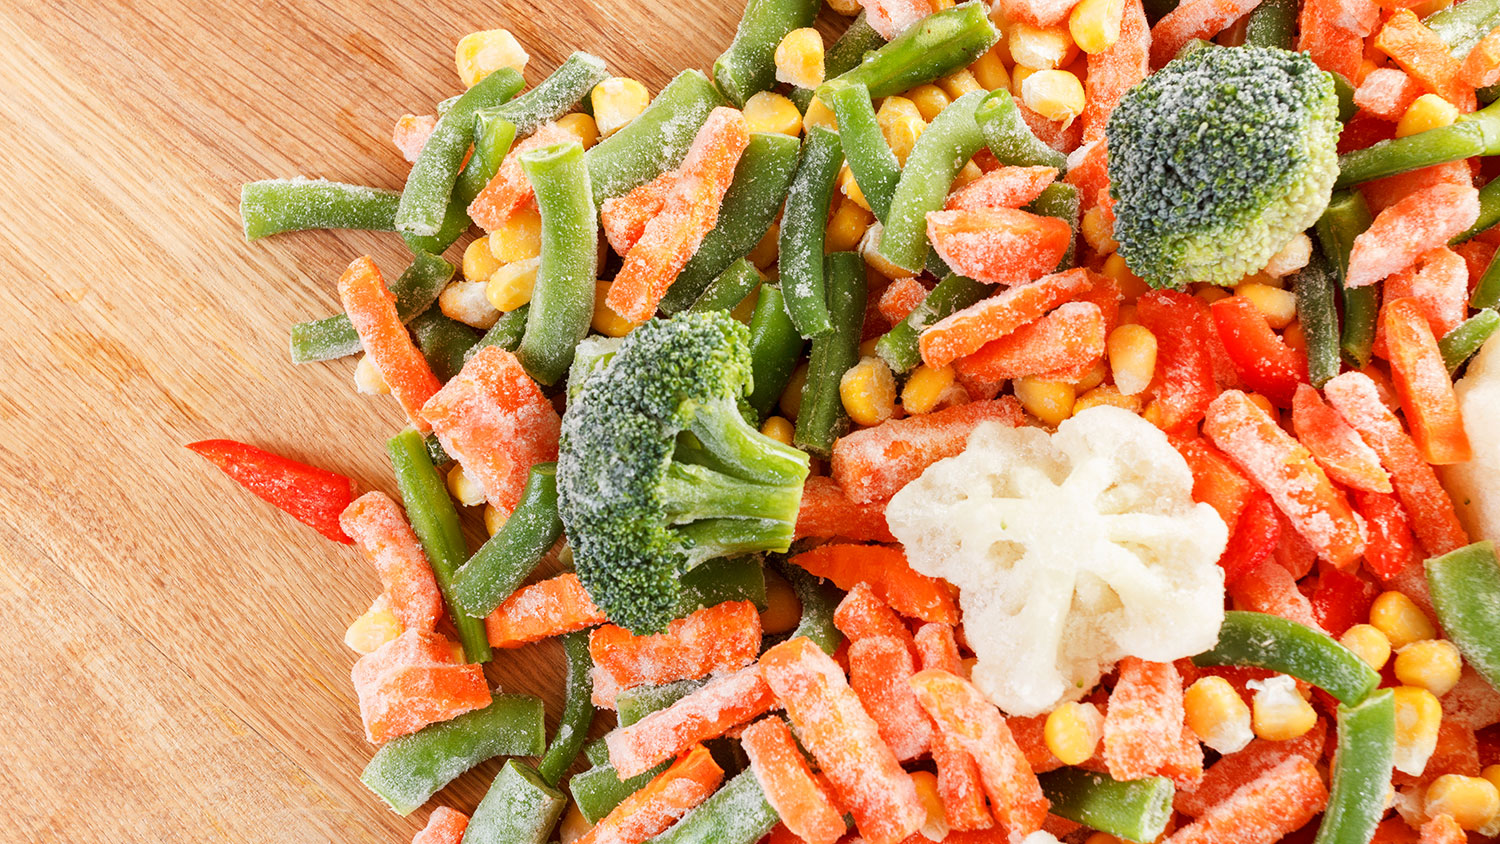 Could Frozen Vegetables Be More Nutritious Than Fresh?